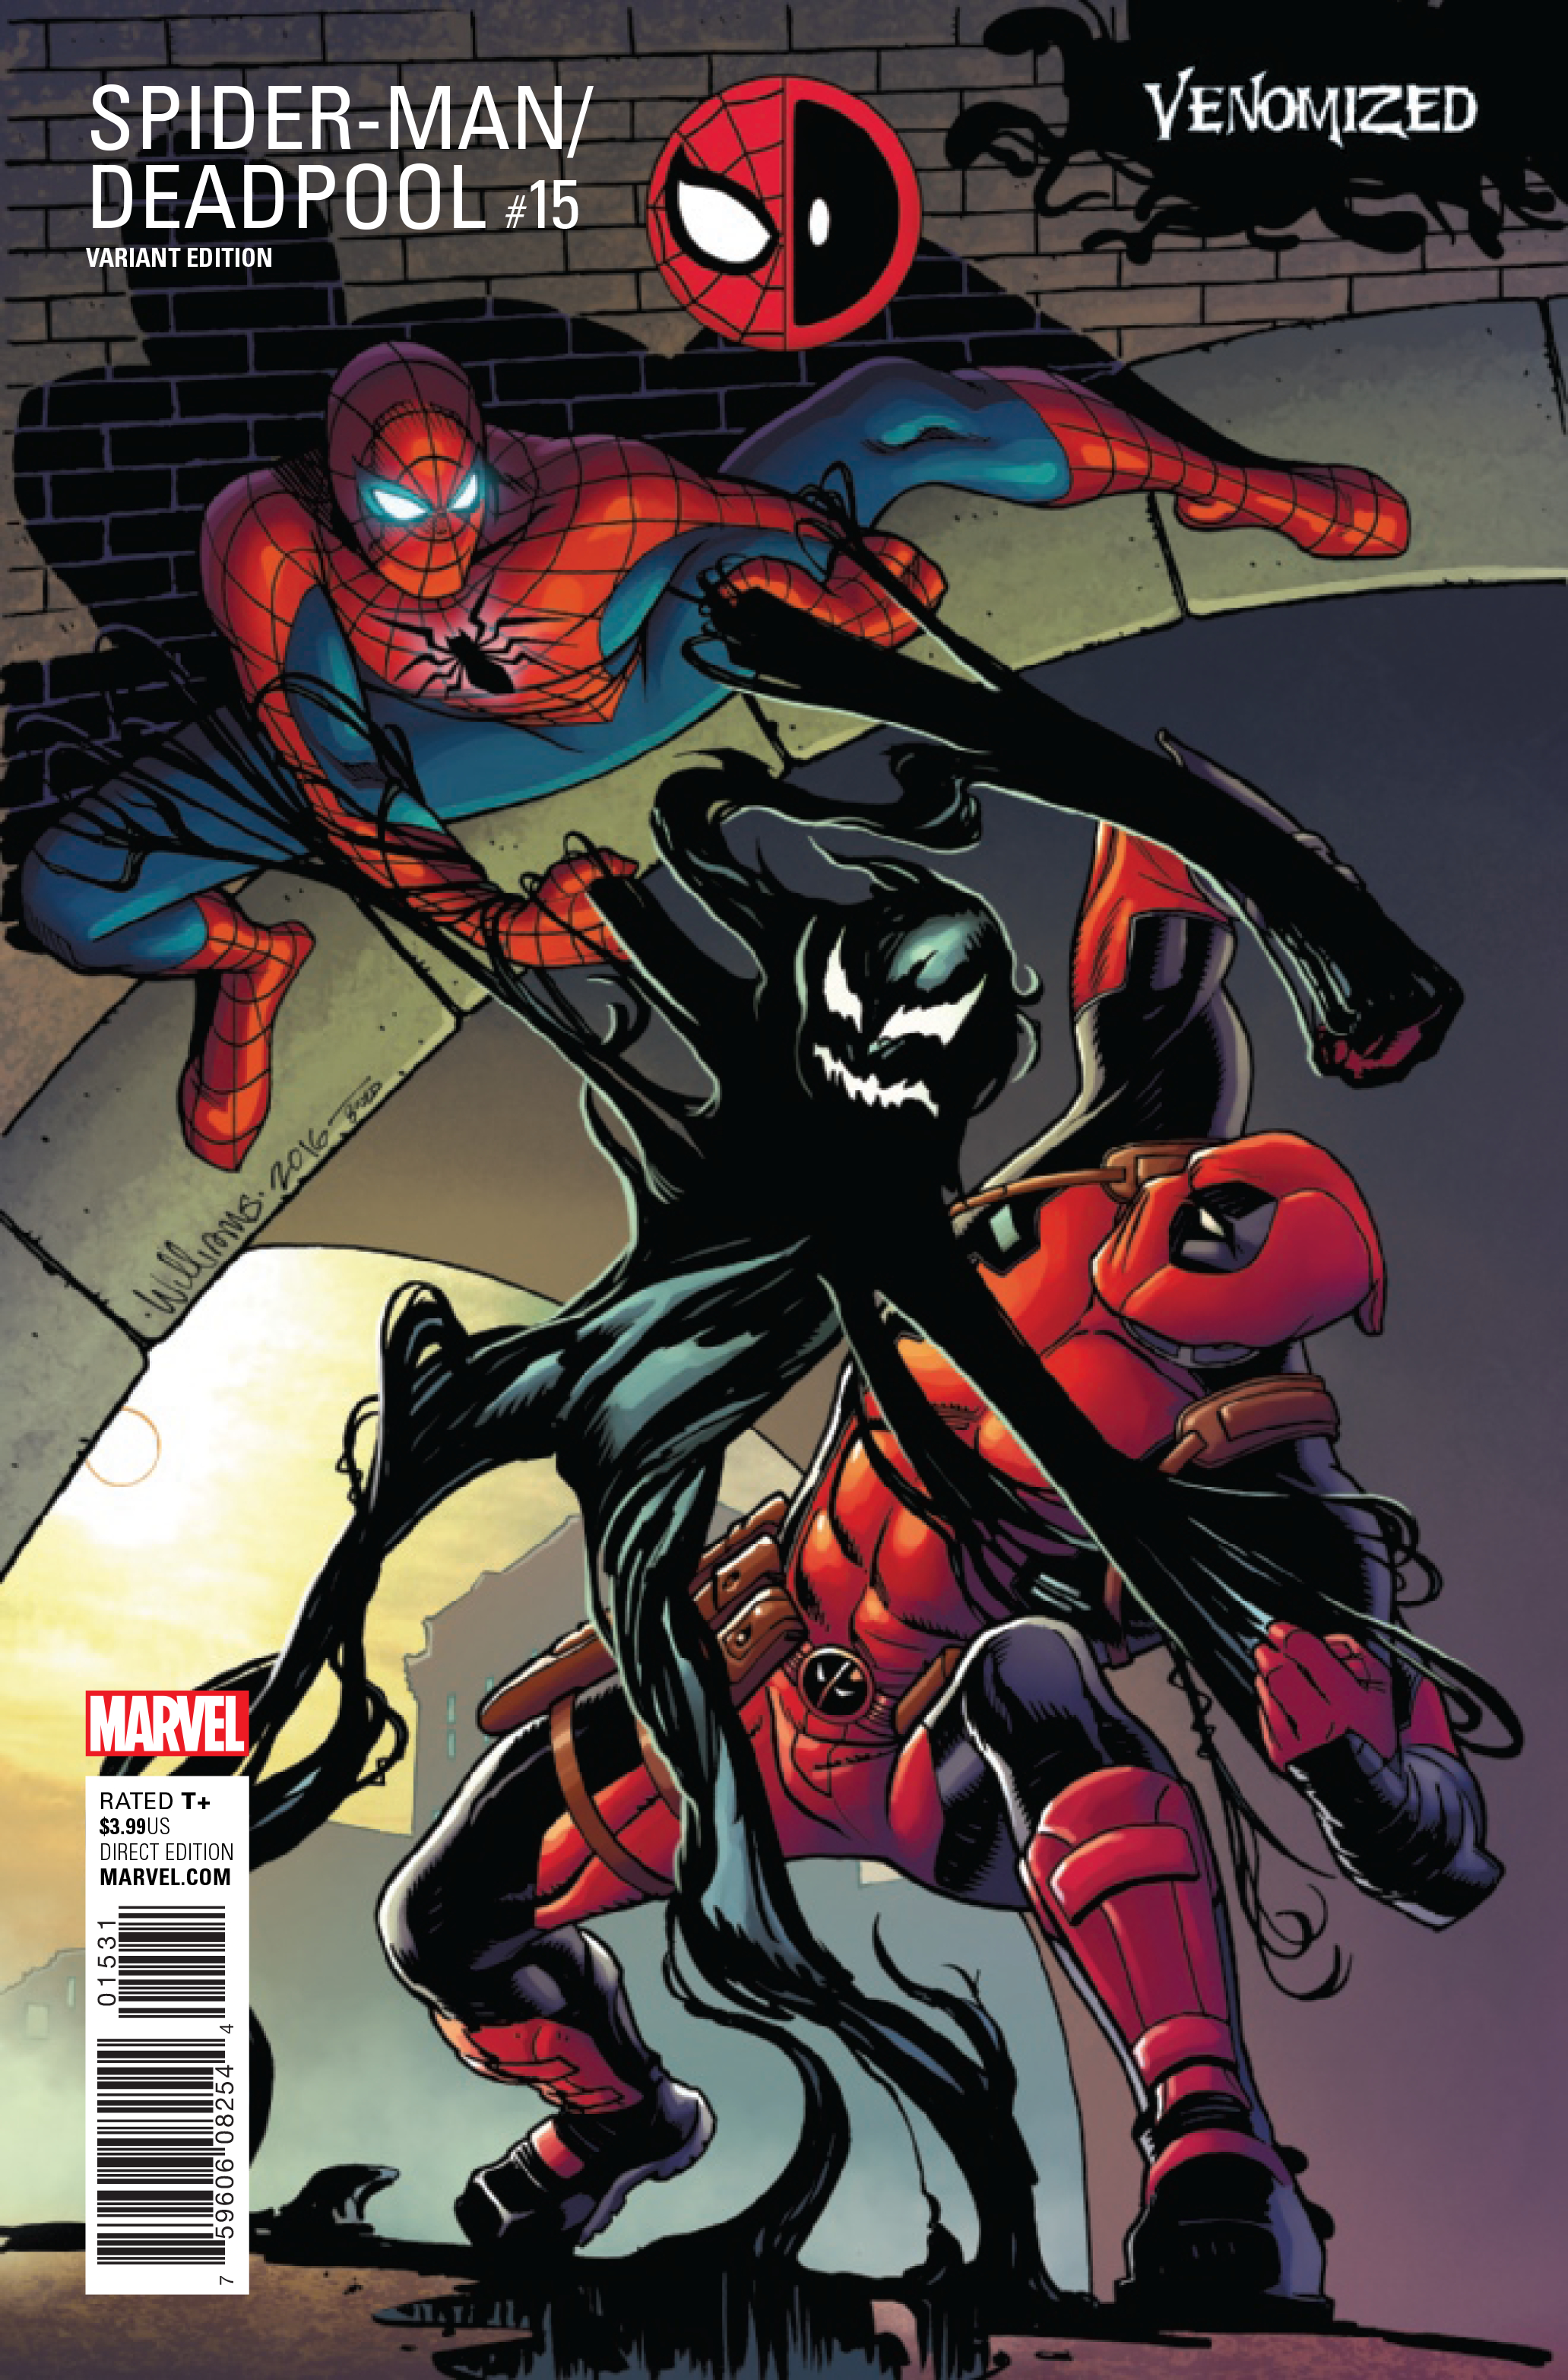 SPIDER MAN DEADPOOL #15 WILLIAMS VENOMIZED VAR